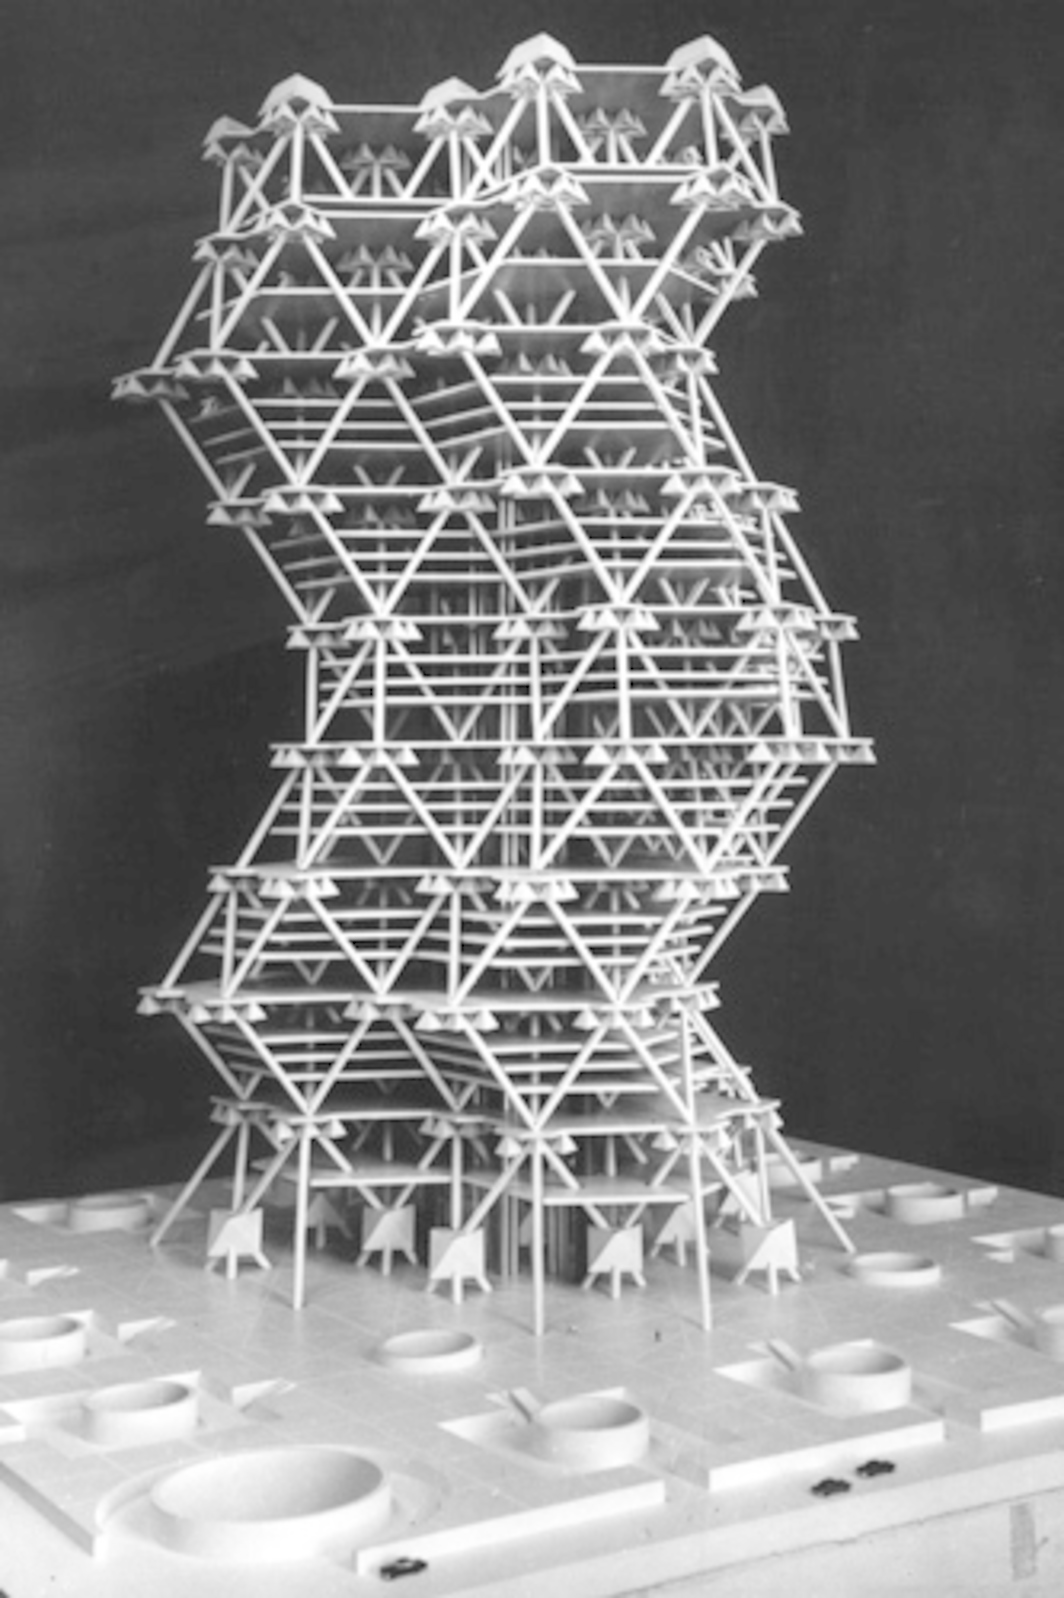 Louis I. Kahn and Anne G. Tyng, associated Architects, City Tower, Philadelphia, PA,1956–57, model. Courtesy of the Louis I. Kahn Collection, University of Pennsylvania and the Pennsylvania Historical and Museum Commission.